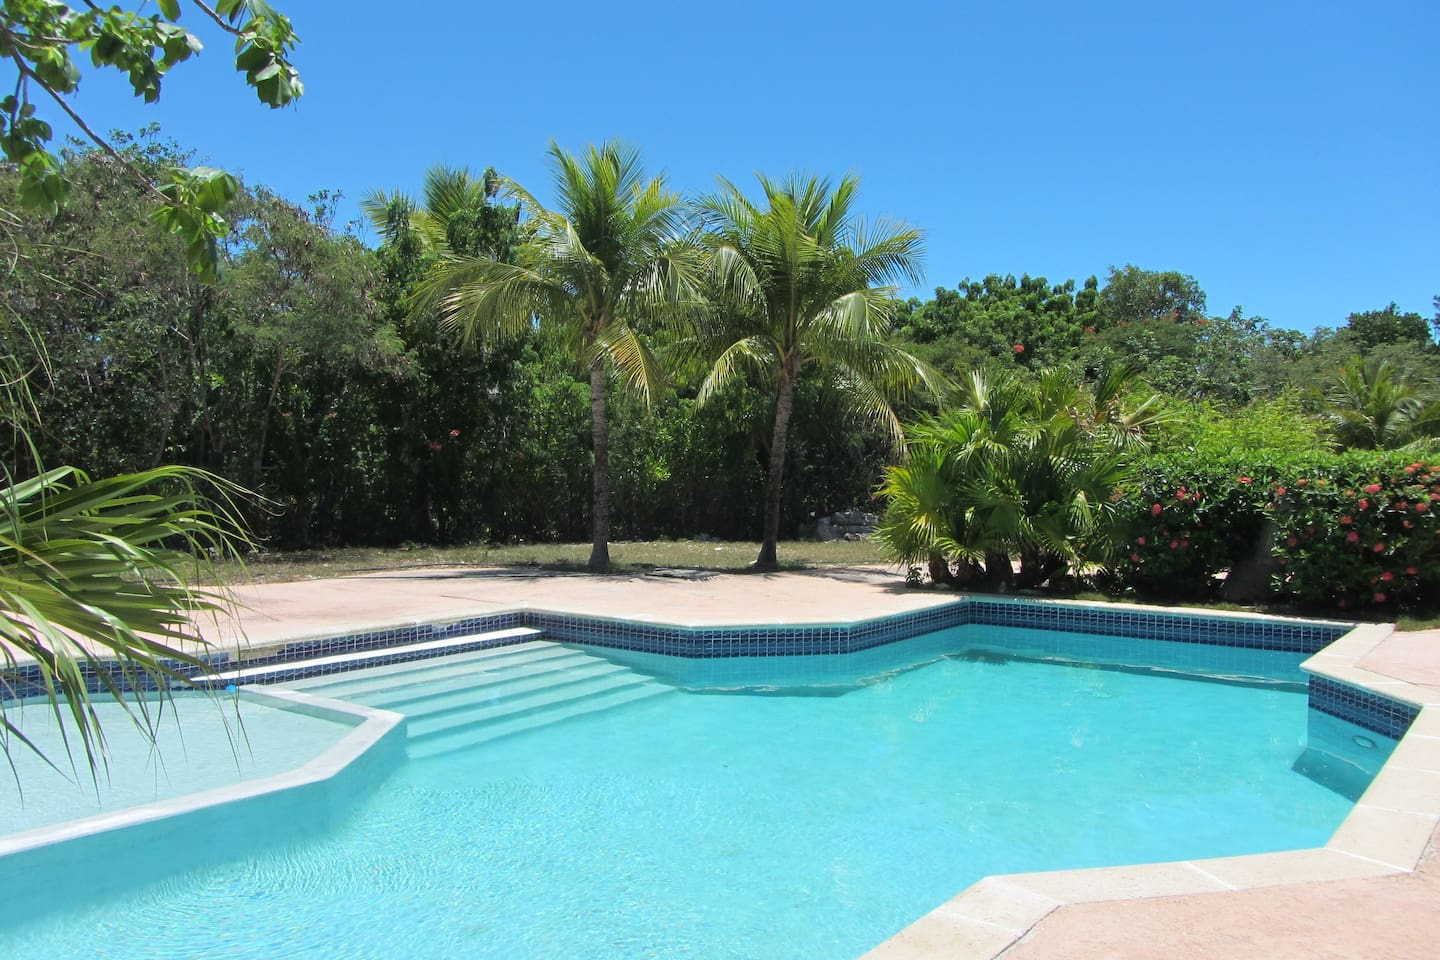 Nice saltwater pool awaits you.  Total remodel with new floors, new paint, new fridge, decorations, and a new kitchen with new microwave, new cookware, induction cooktop, all new lights, new ceiling fan, and a smart tv